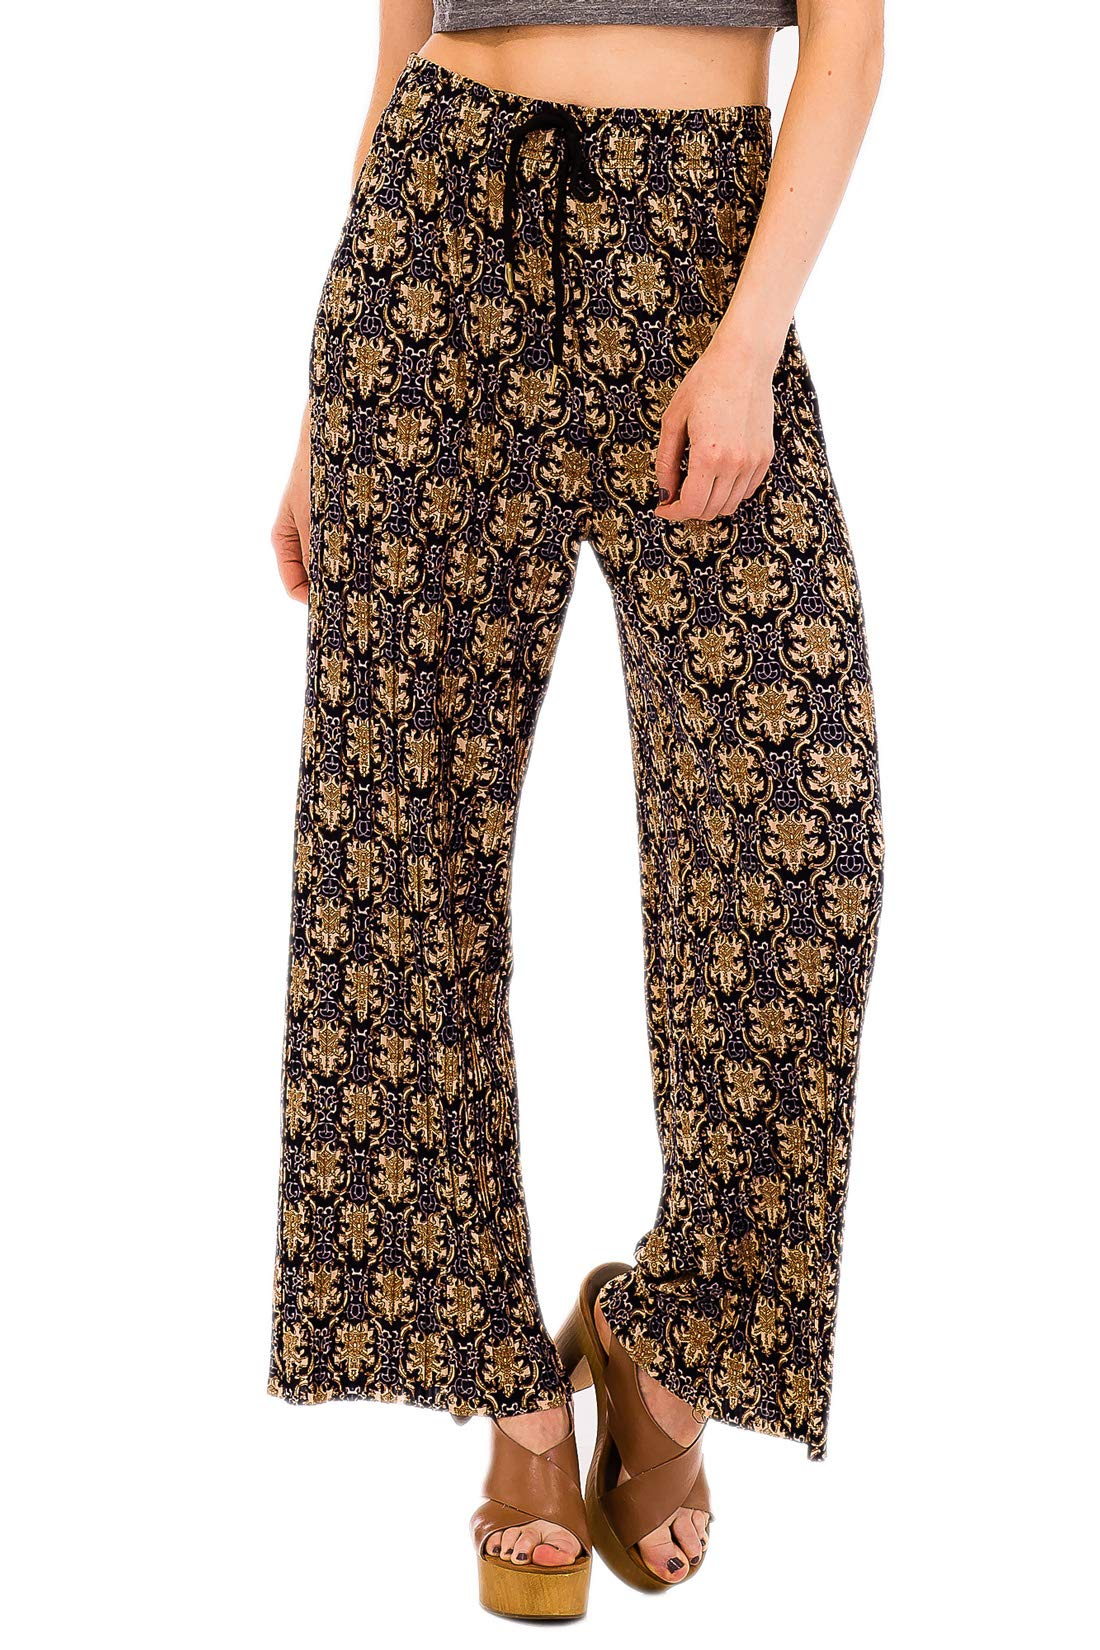 Squish Printed Drawstring Stretch Pants for Women (Gold)